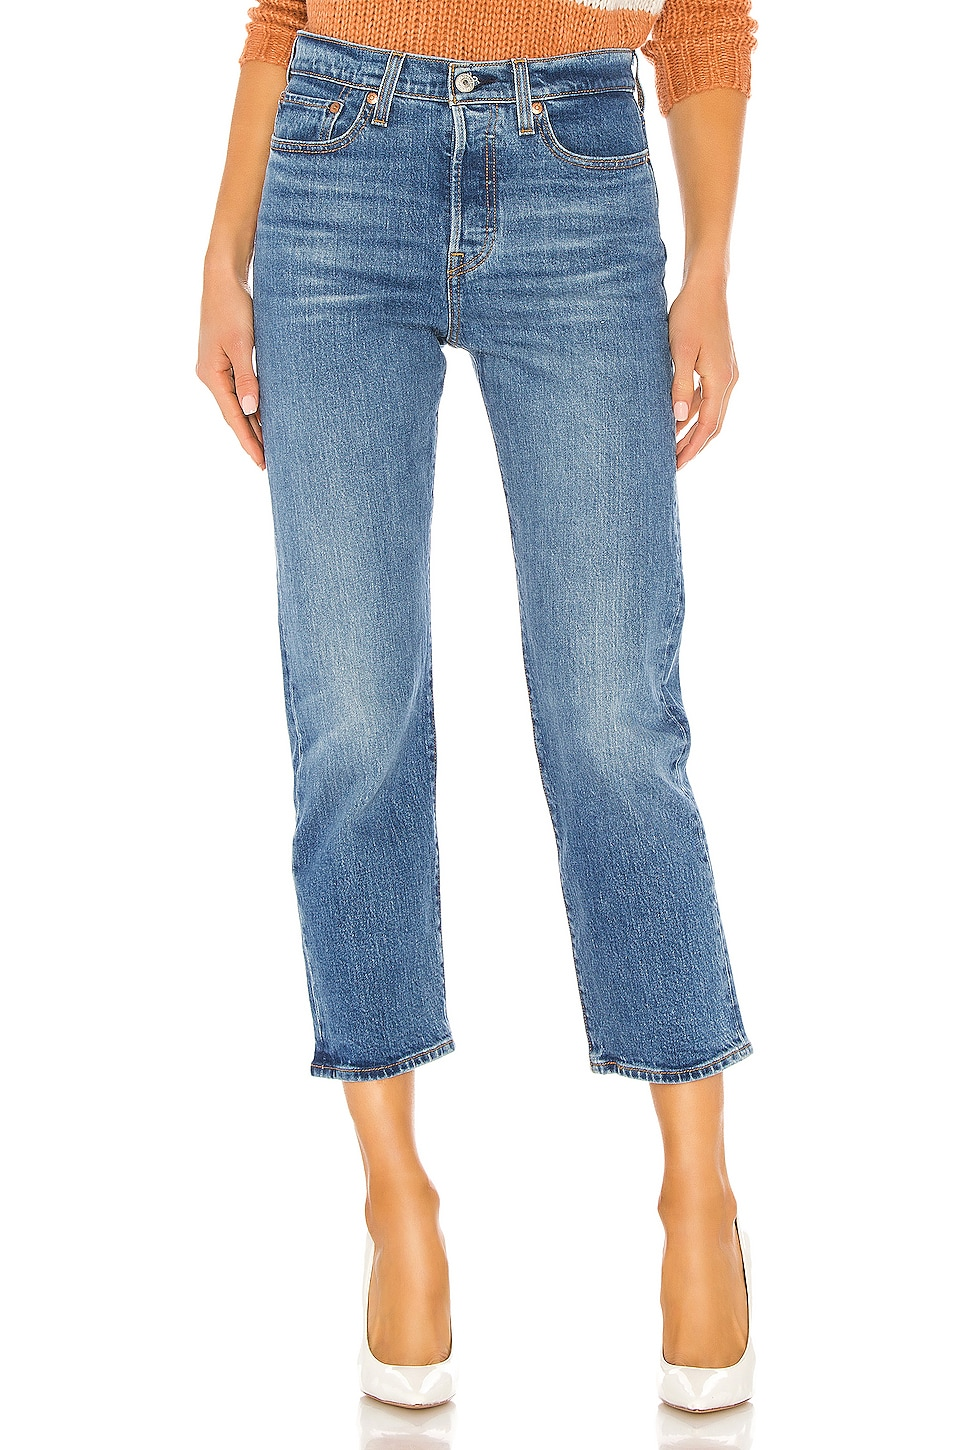 Wedgie Straight             LEVI'S                                                                                                                                         Sale price:                                                                       CA$ 89.87                                                                  Previous price:                                                                       CA$ 137.62 7